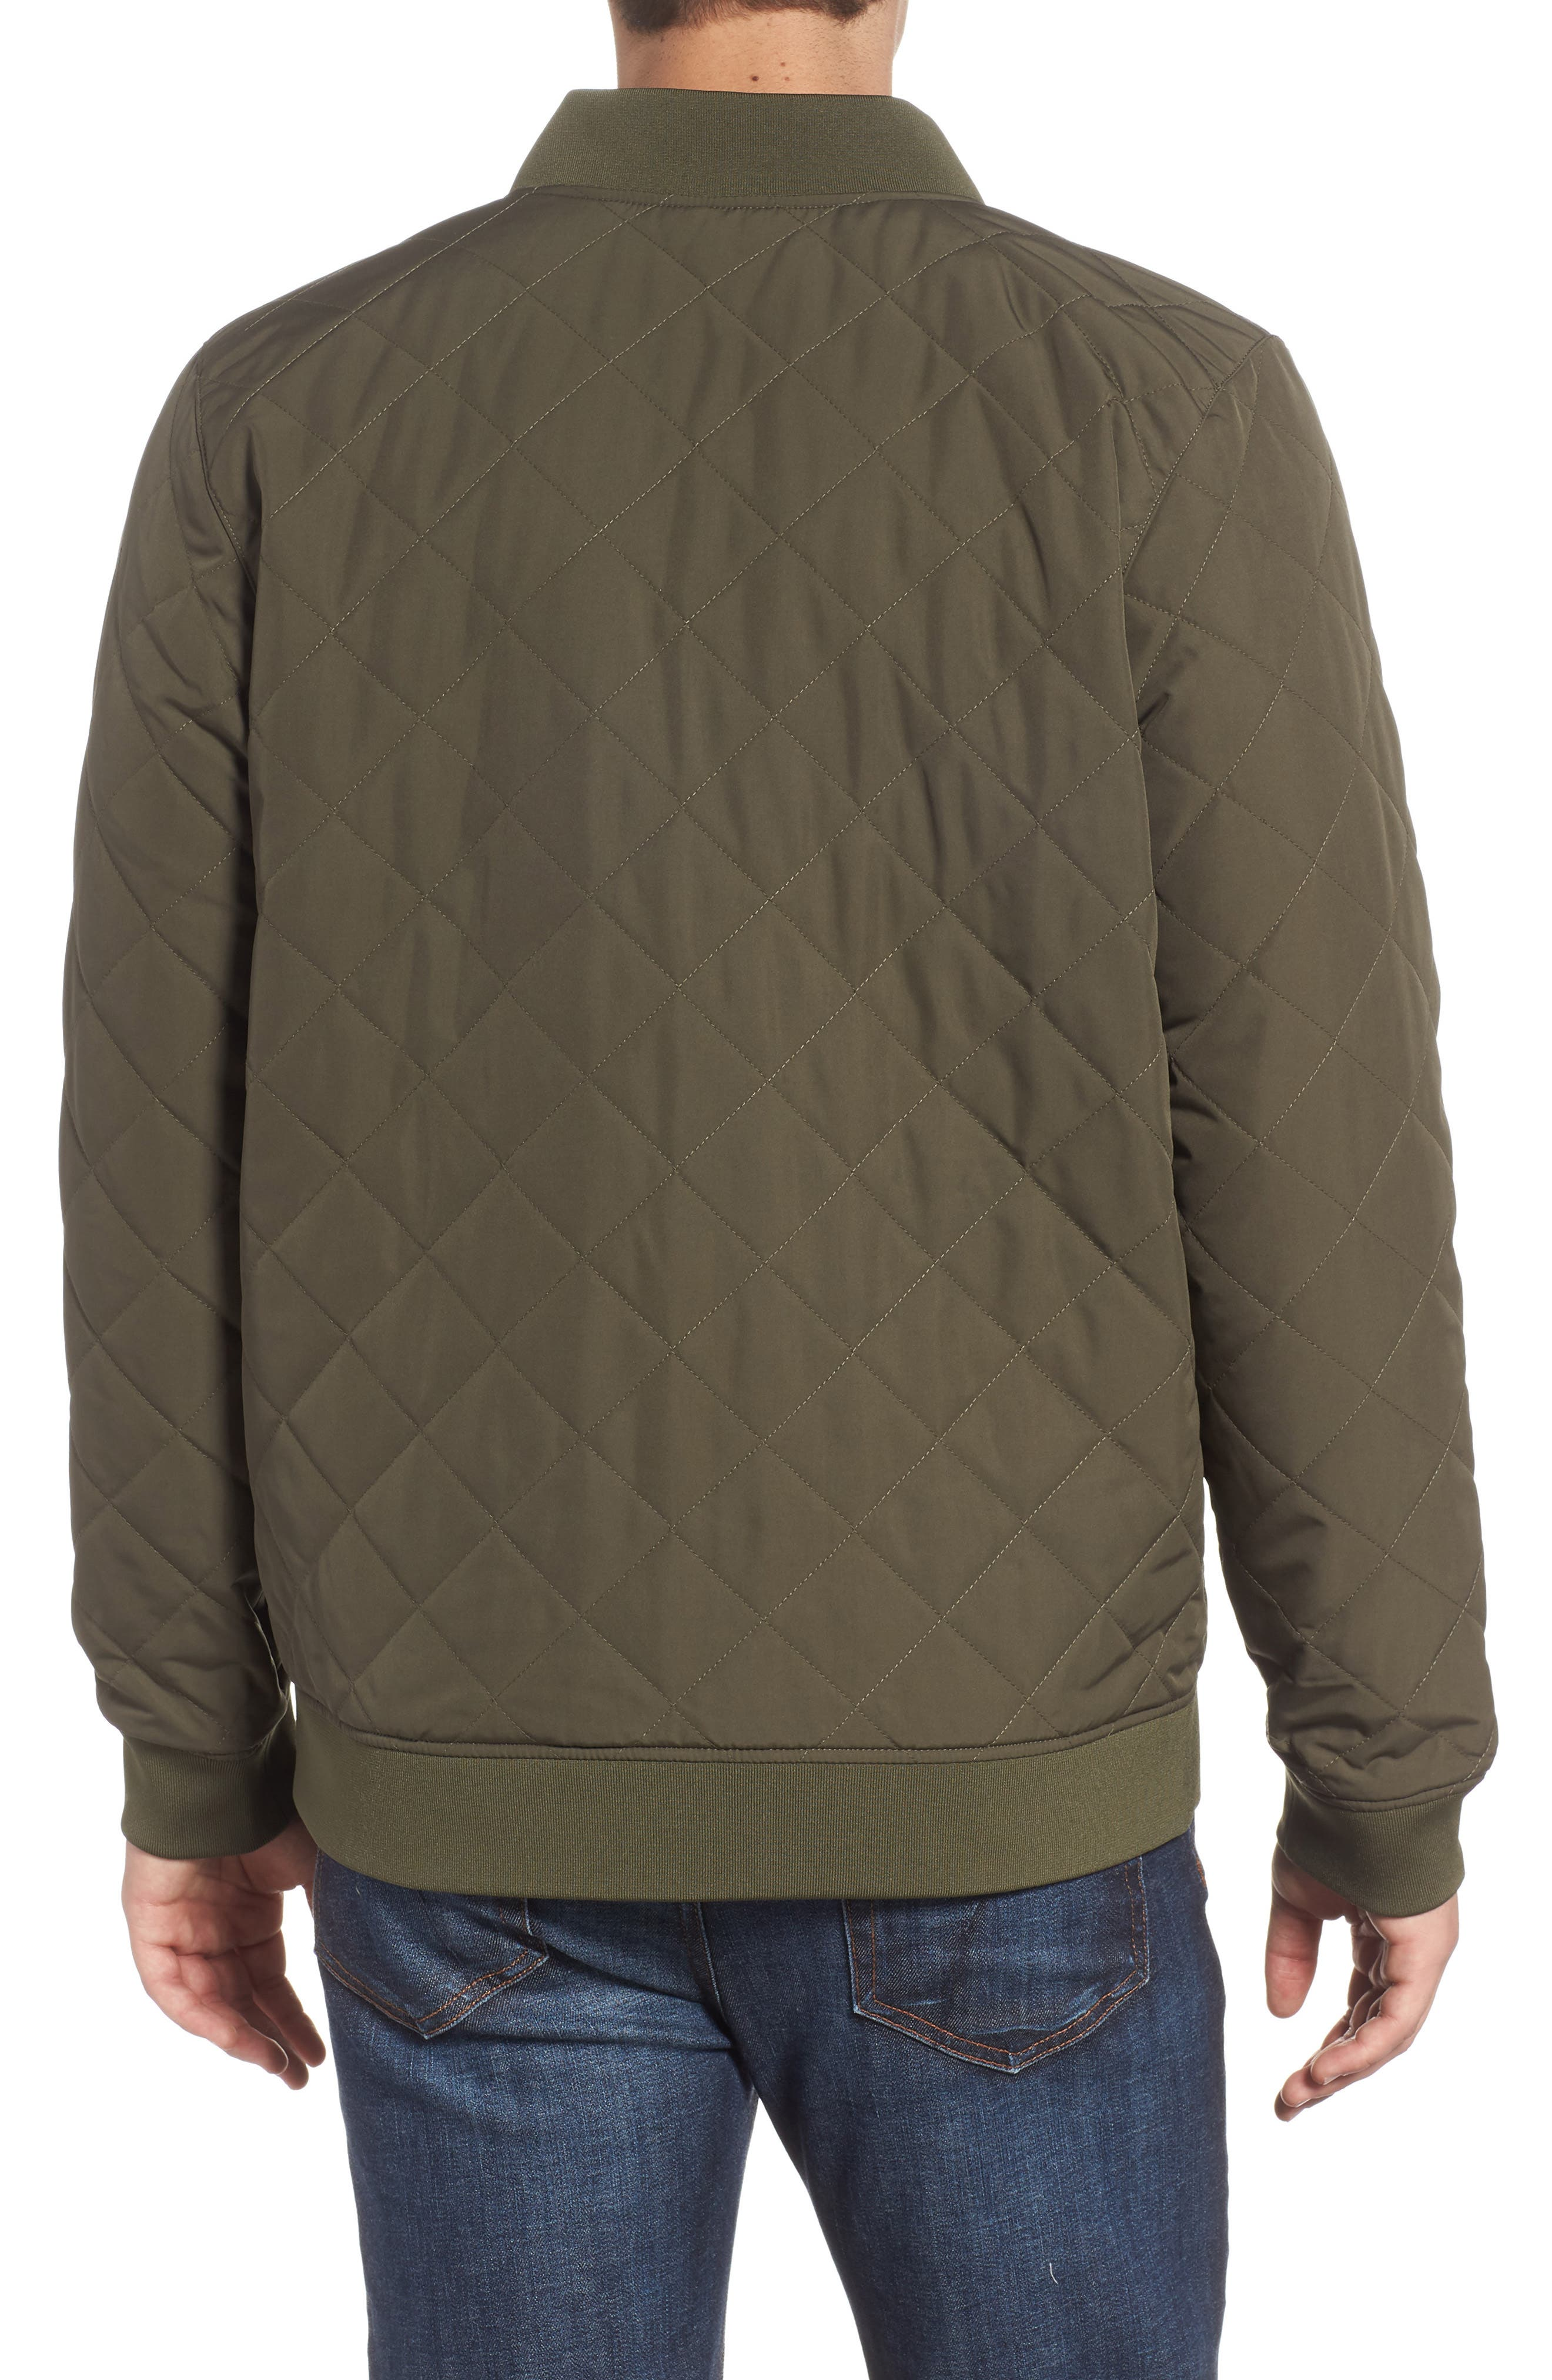 THE NORTH FACE,                             Jester Reversible Bomber Jacket,                             Alternate thumbnail 3, color,                             NEW TAUPE GREEN